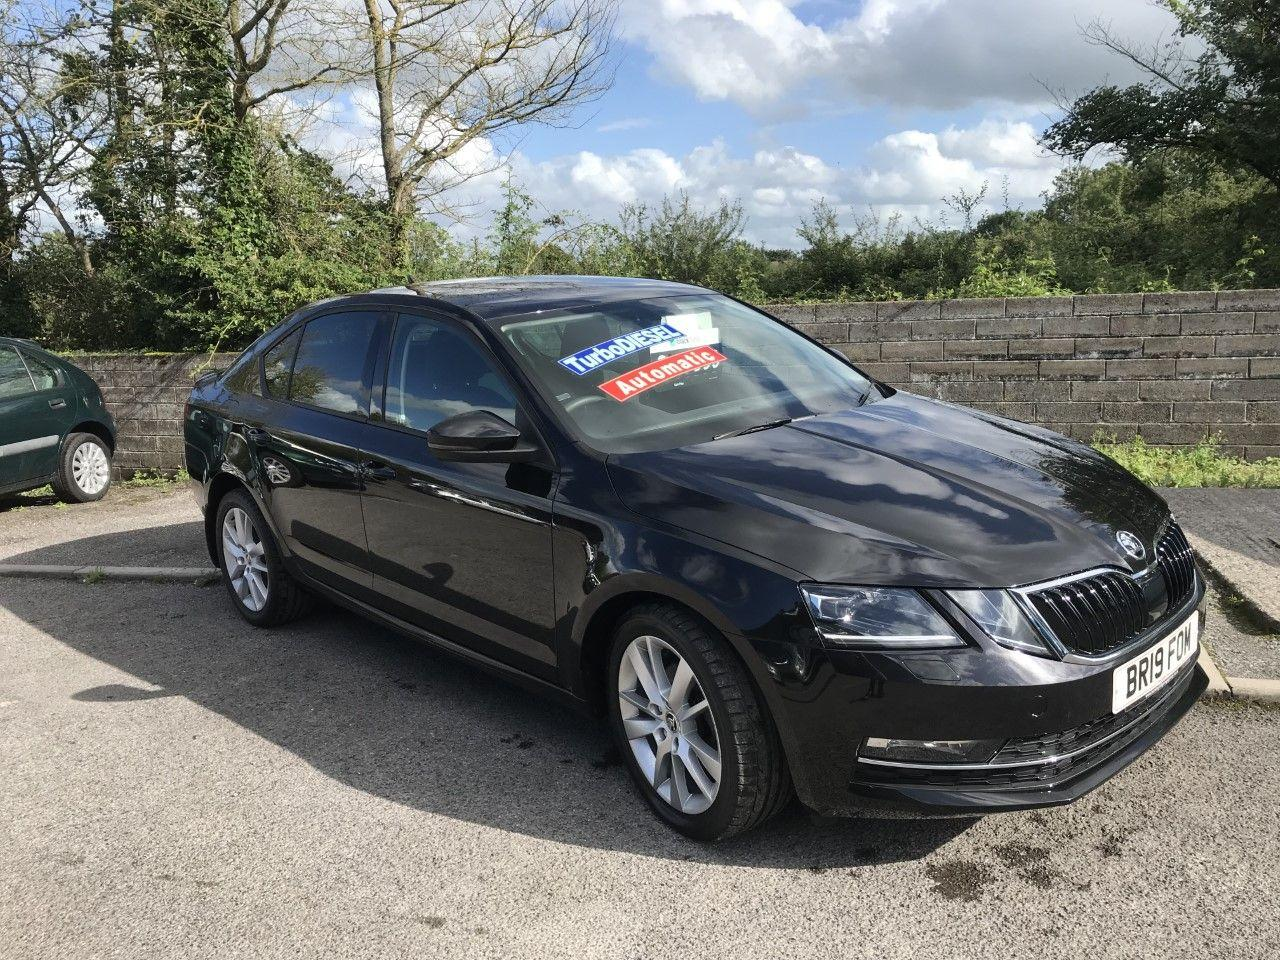 Skoda Octavia 2.0 TDI CR SE L 5dr DSG [7 speed] Hatchback Diesel Black